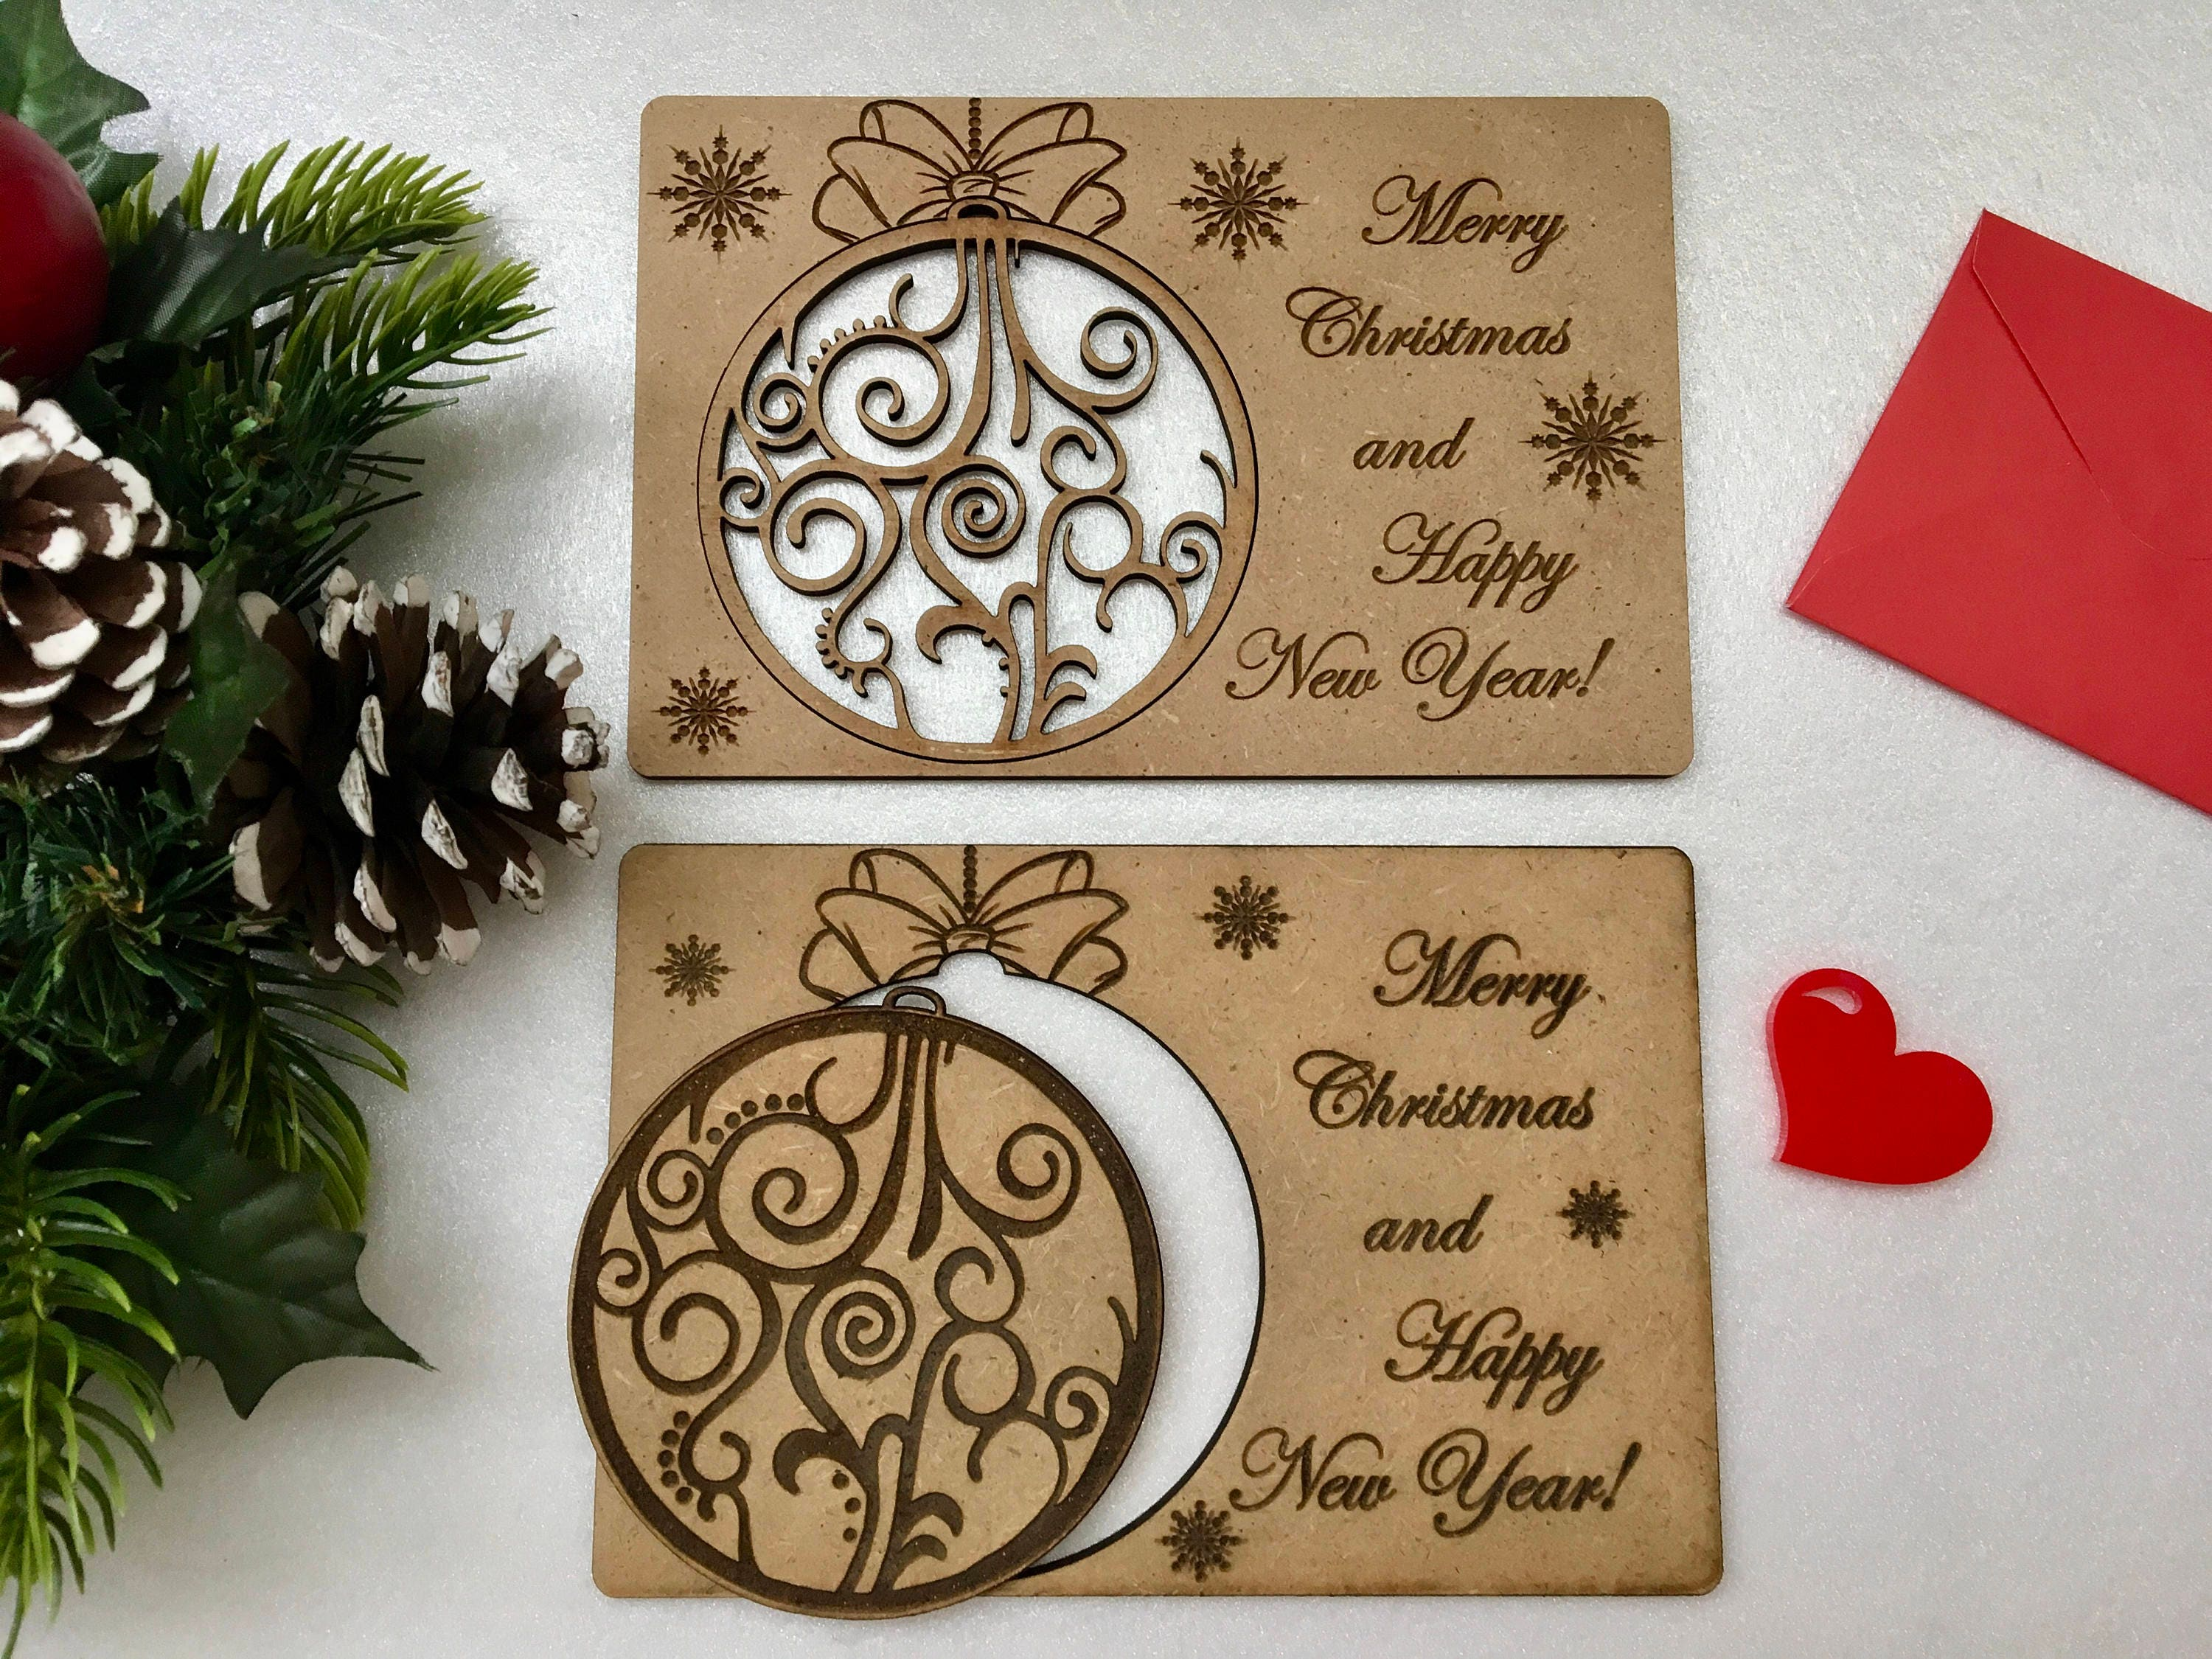 Merry Christmas cards Engraved Xmas ornaments Personalized wooden ...